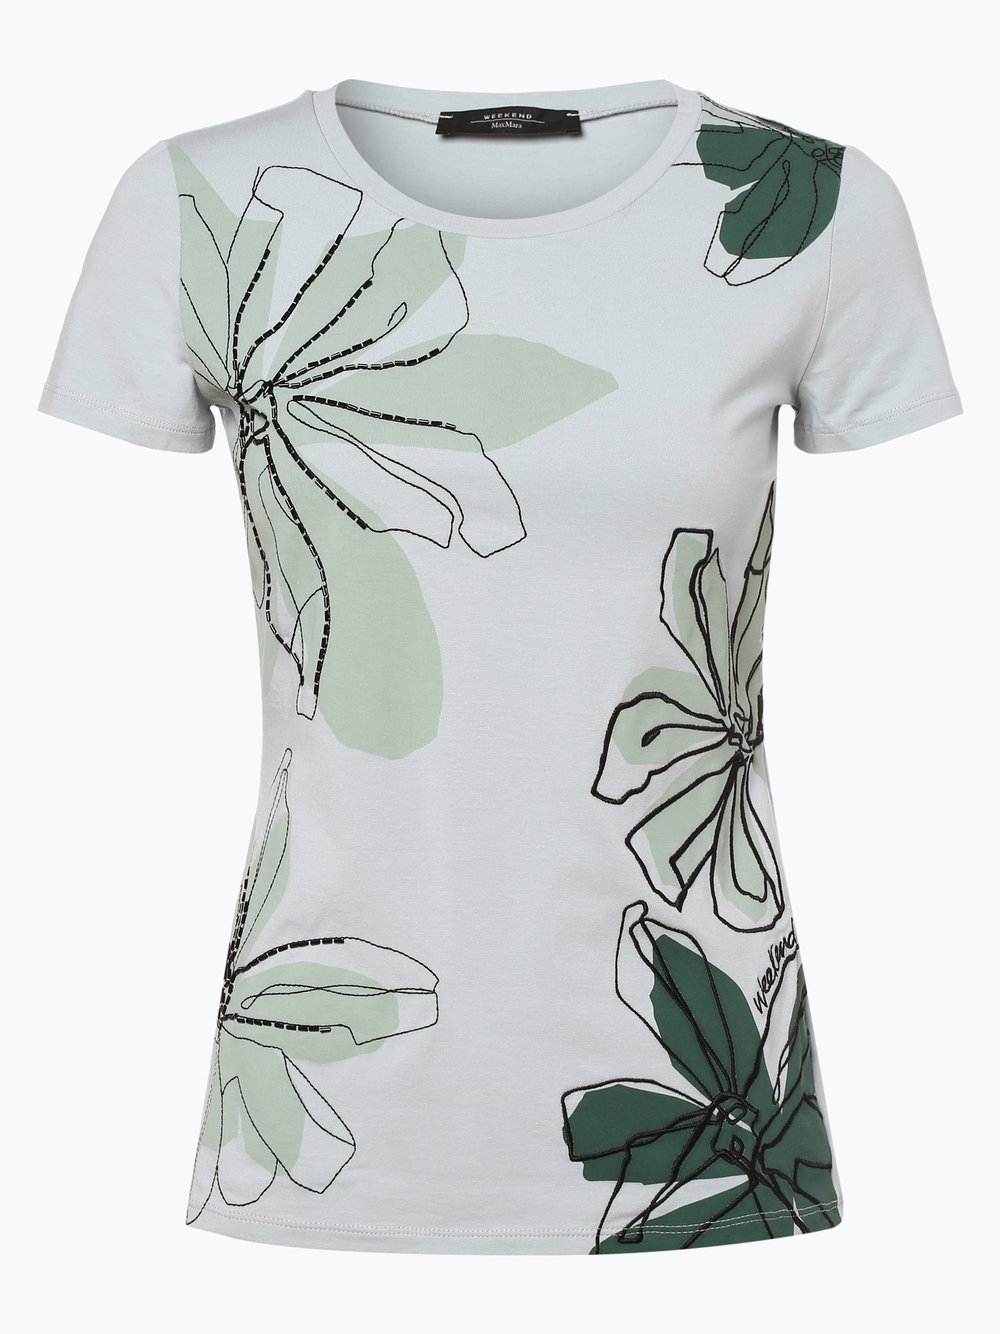 Weekend Max Mara - T-shirt damski, zielony Weekend Max Mara